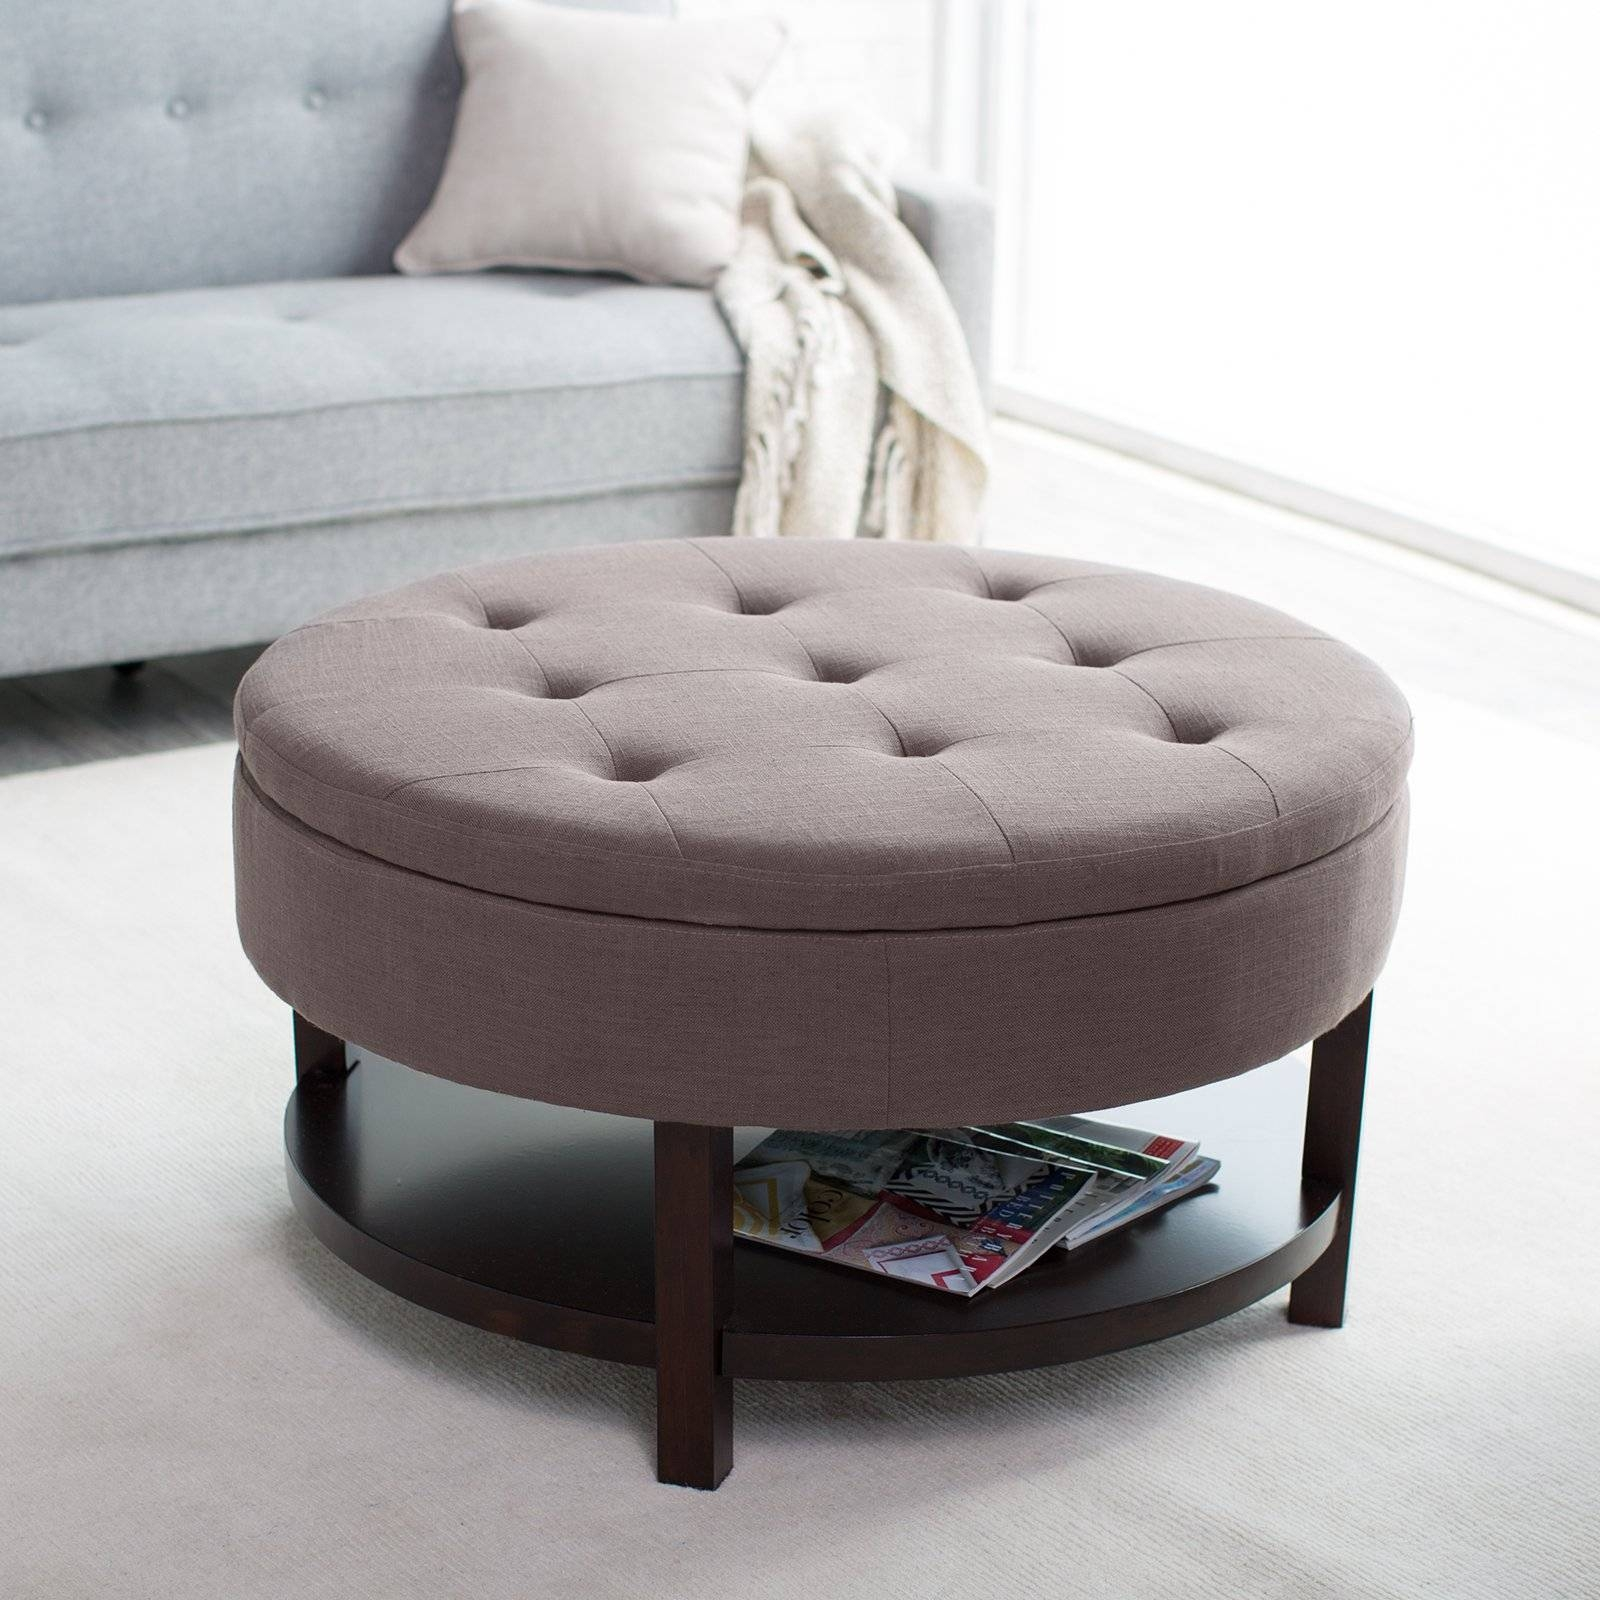 Coffee Table: Awesome Round Ottoman Coffee Table Upholstered Round throughout Round Upholstered Coffee Tables (Image 8 of 30)